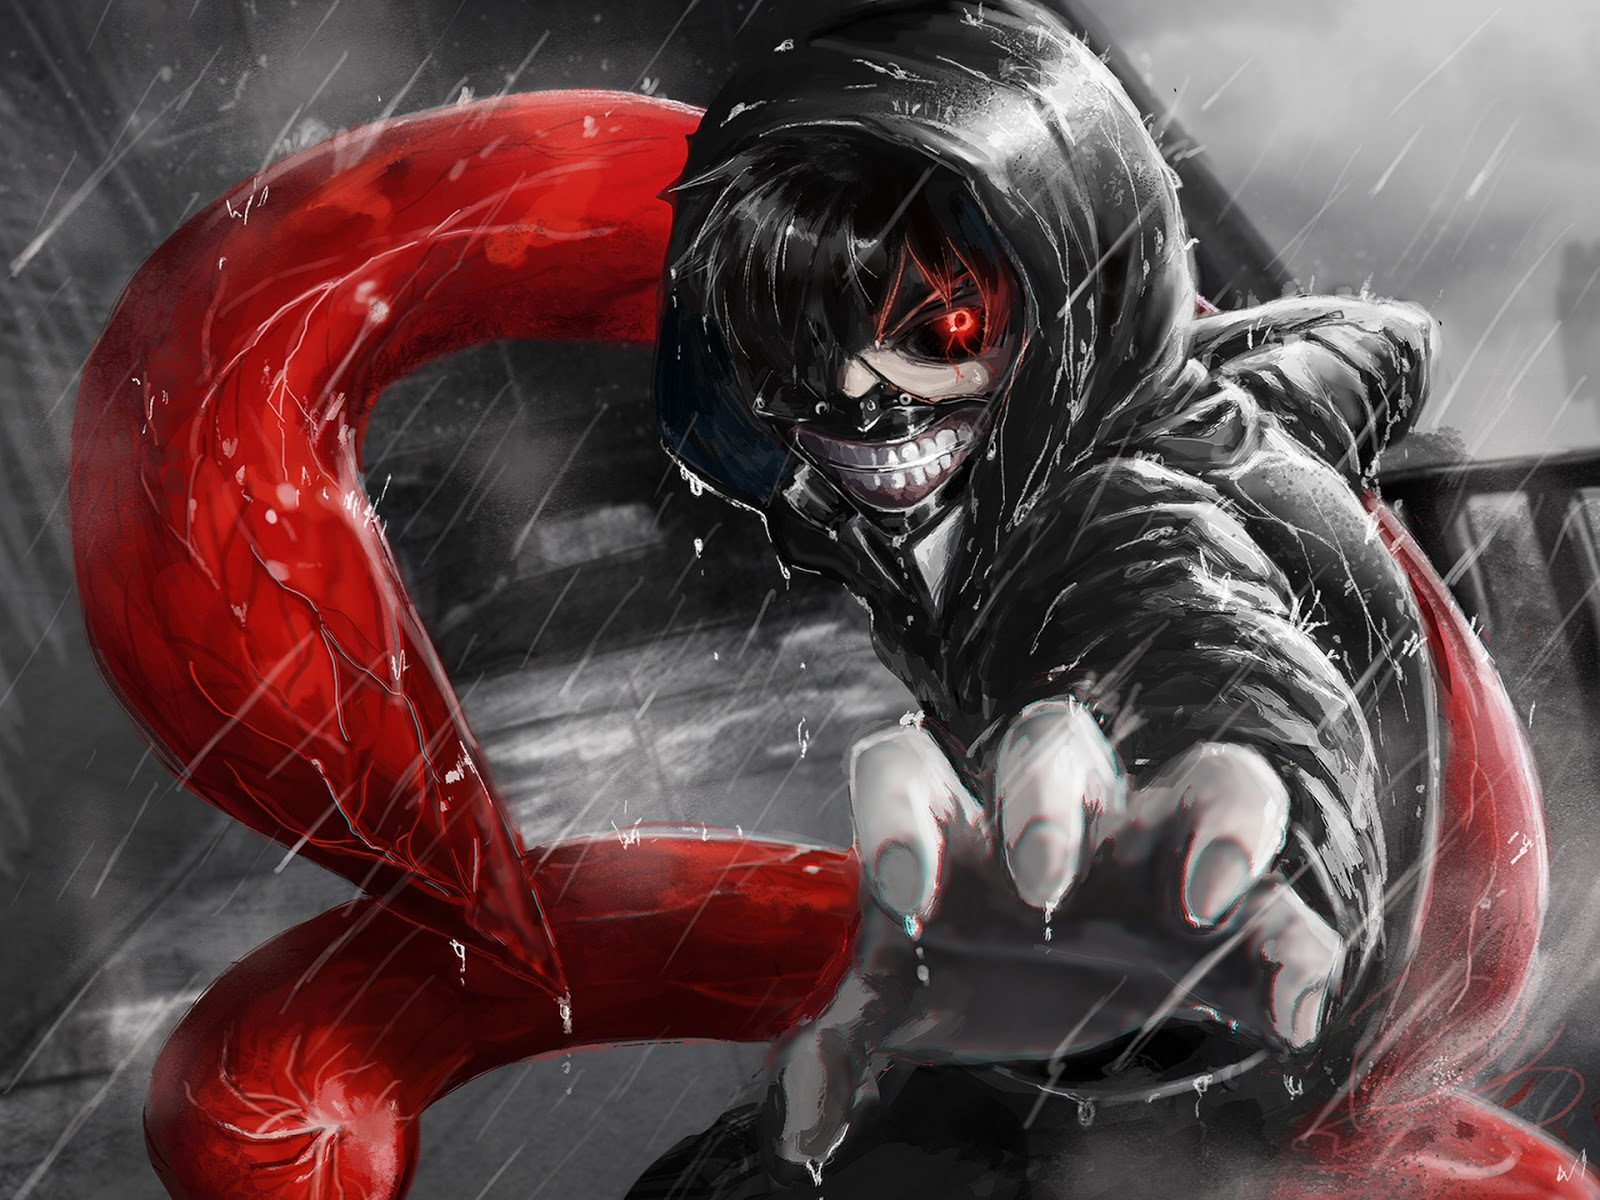 Anime Wallpaper Games Tokyo Ghoul Wallpapers Anime